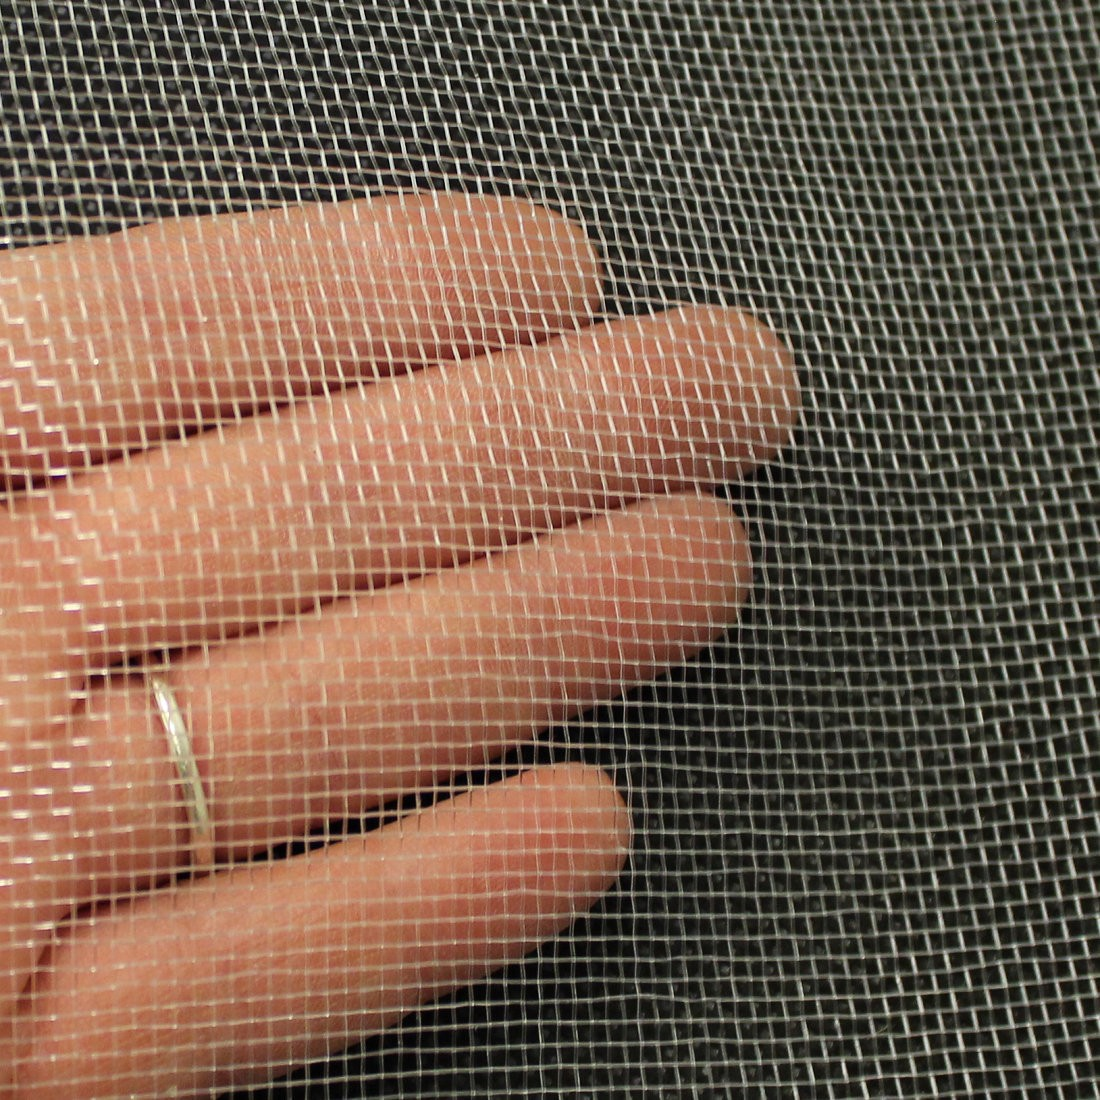 Insect Mesh Woven Fine Mesh - 1.6mm - 100m